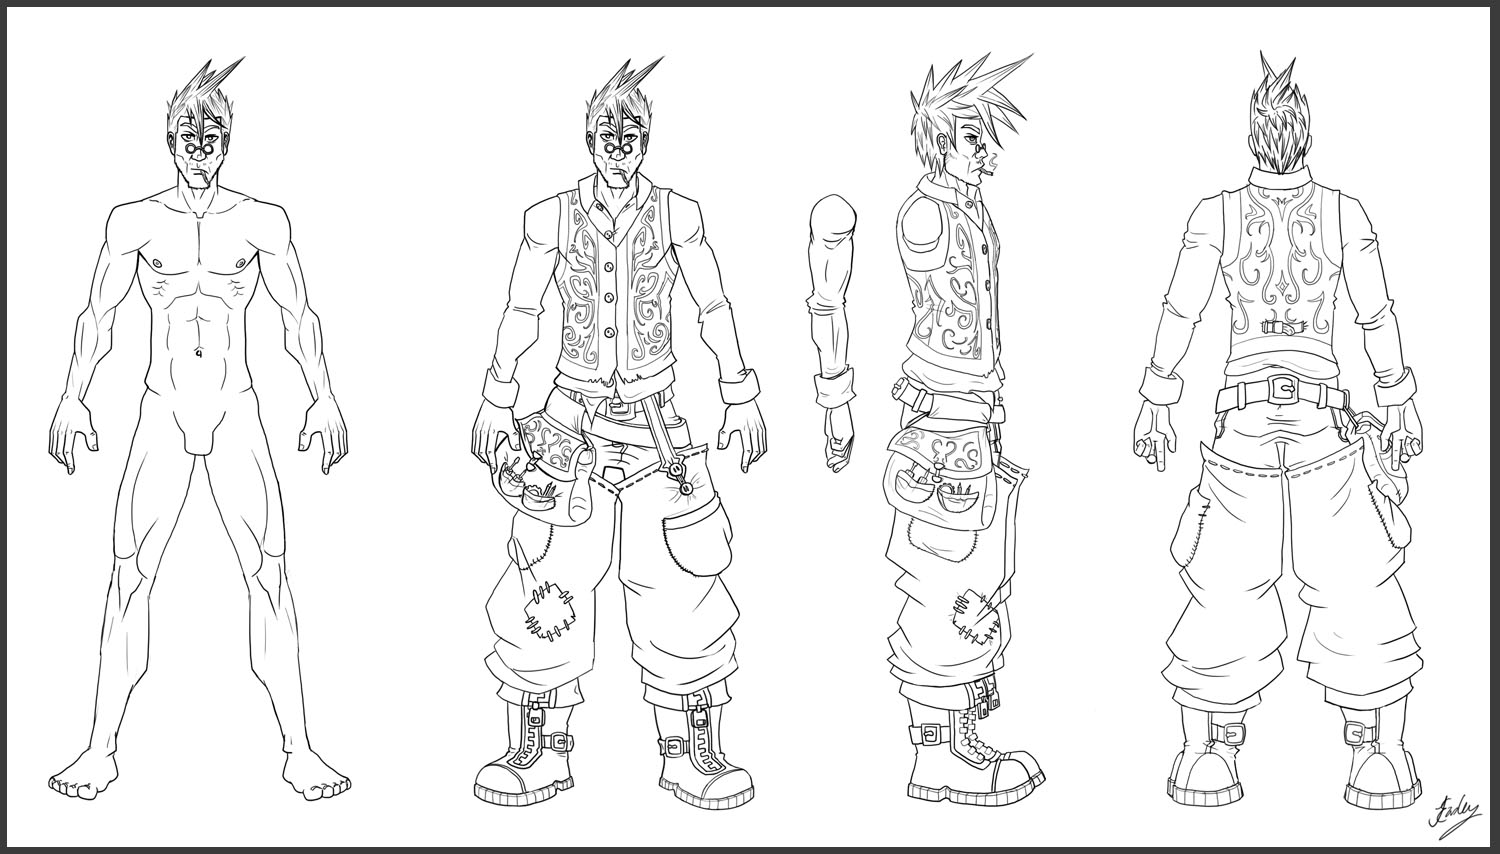 It's just a picture of Dramatic Character Template Drawing